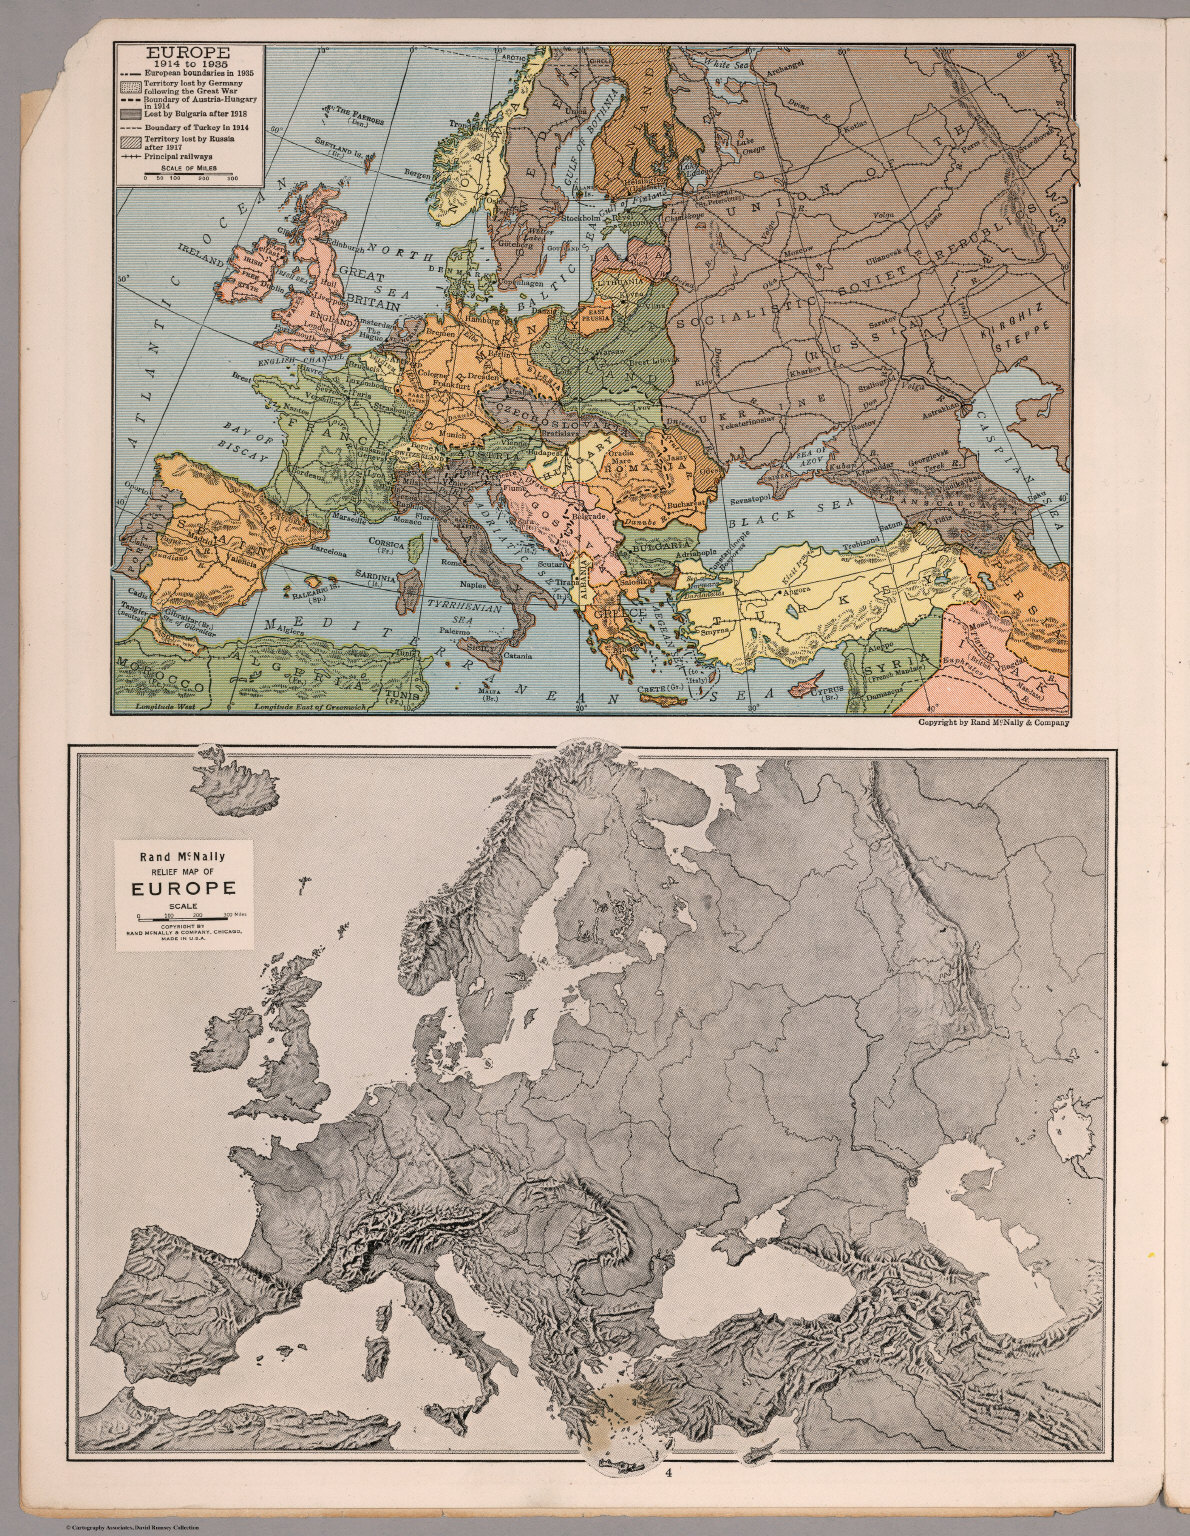 A Map Of Europe In 1914.Europe 1914 1935 Relief Map Of Europe David Rumsey Historical